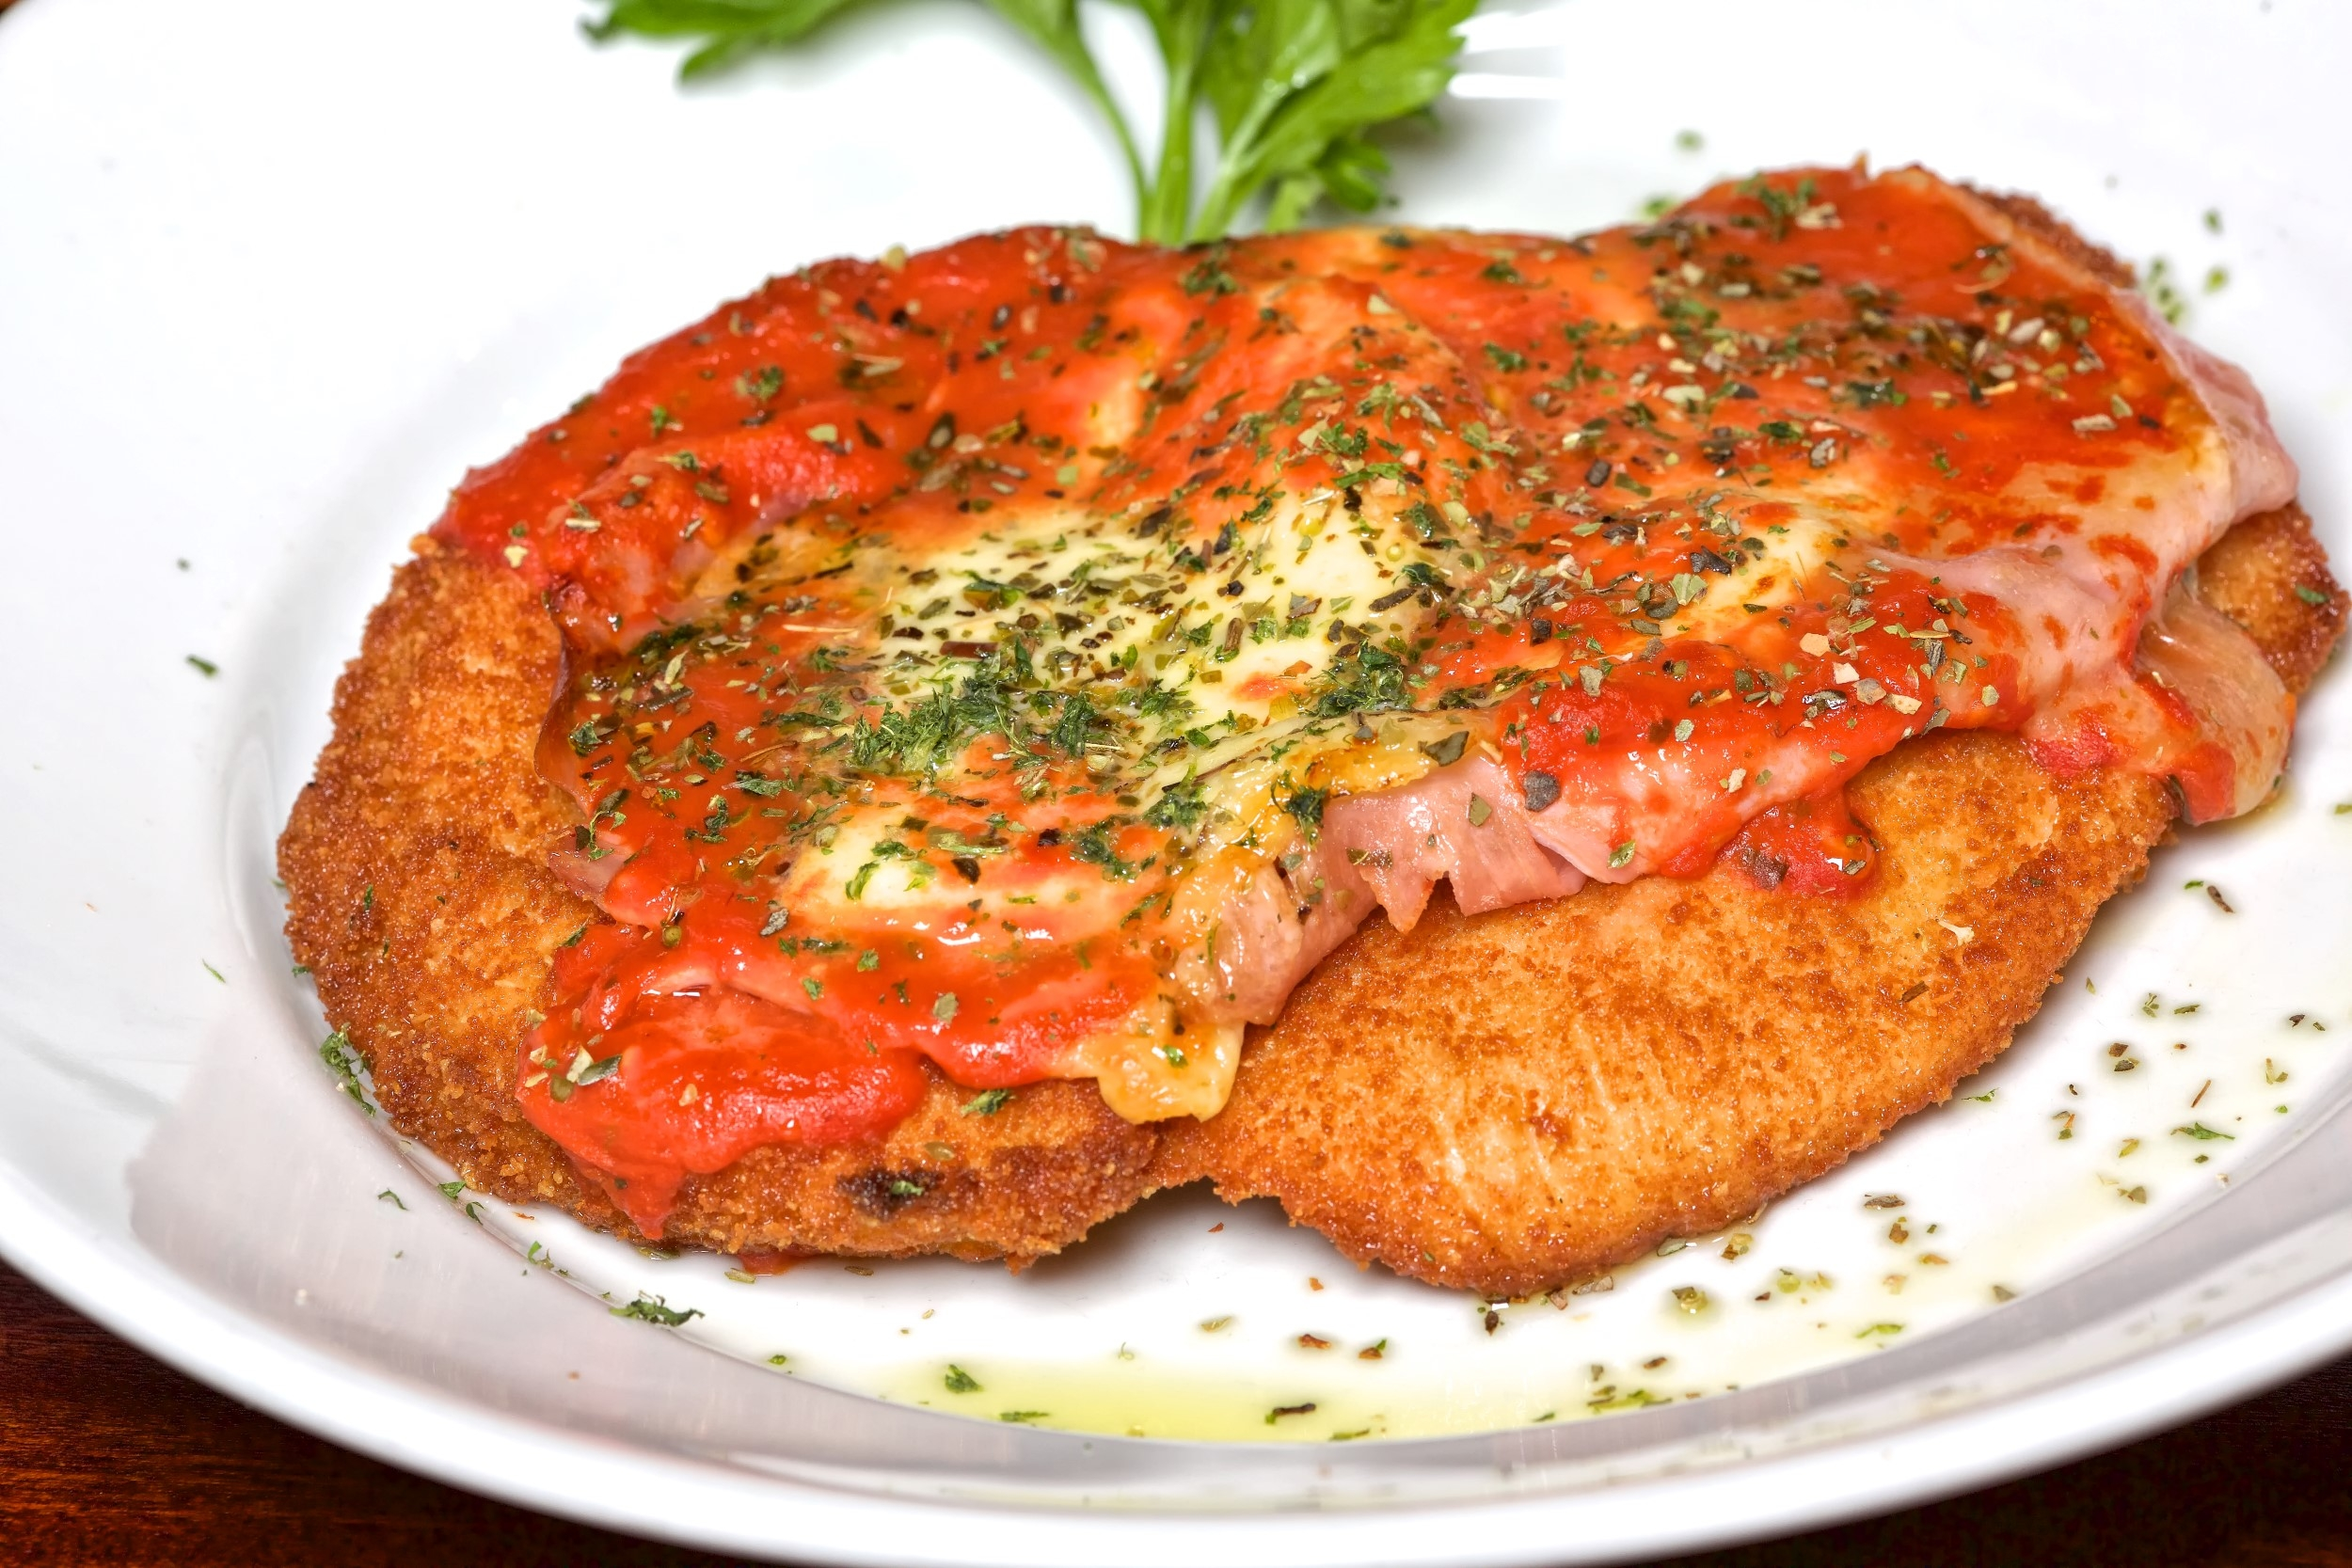 123 ITALIAN FINEST CUISINE (5) MEATS AND CHICKEN VEAL LIVER 008902 (Custom)